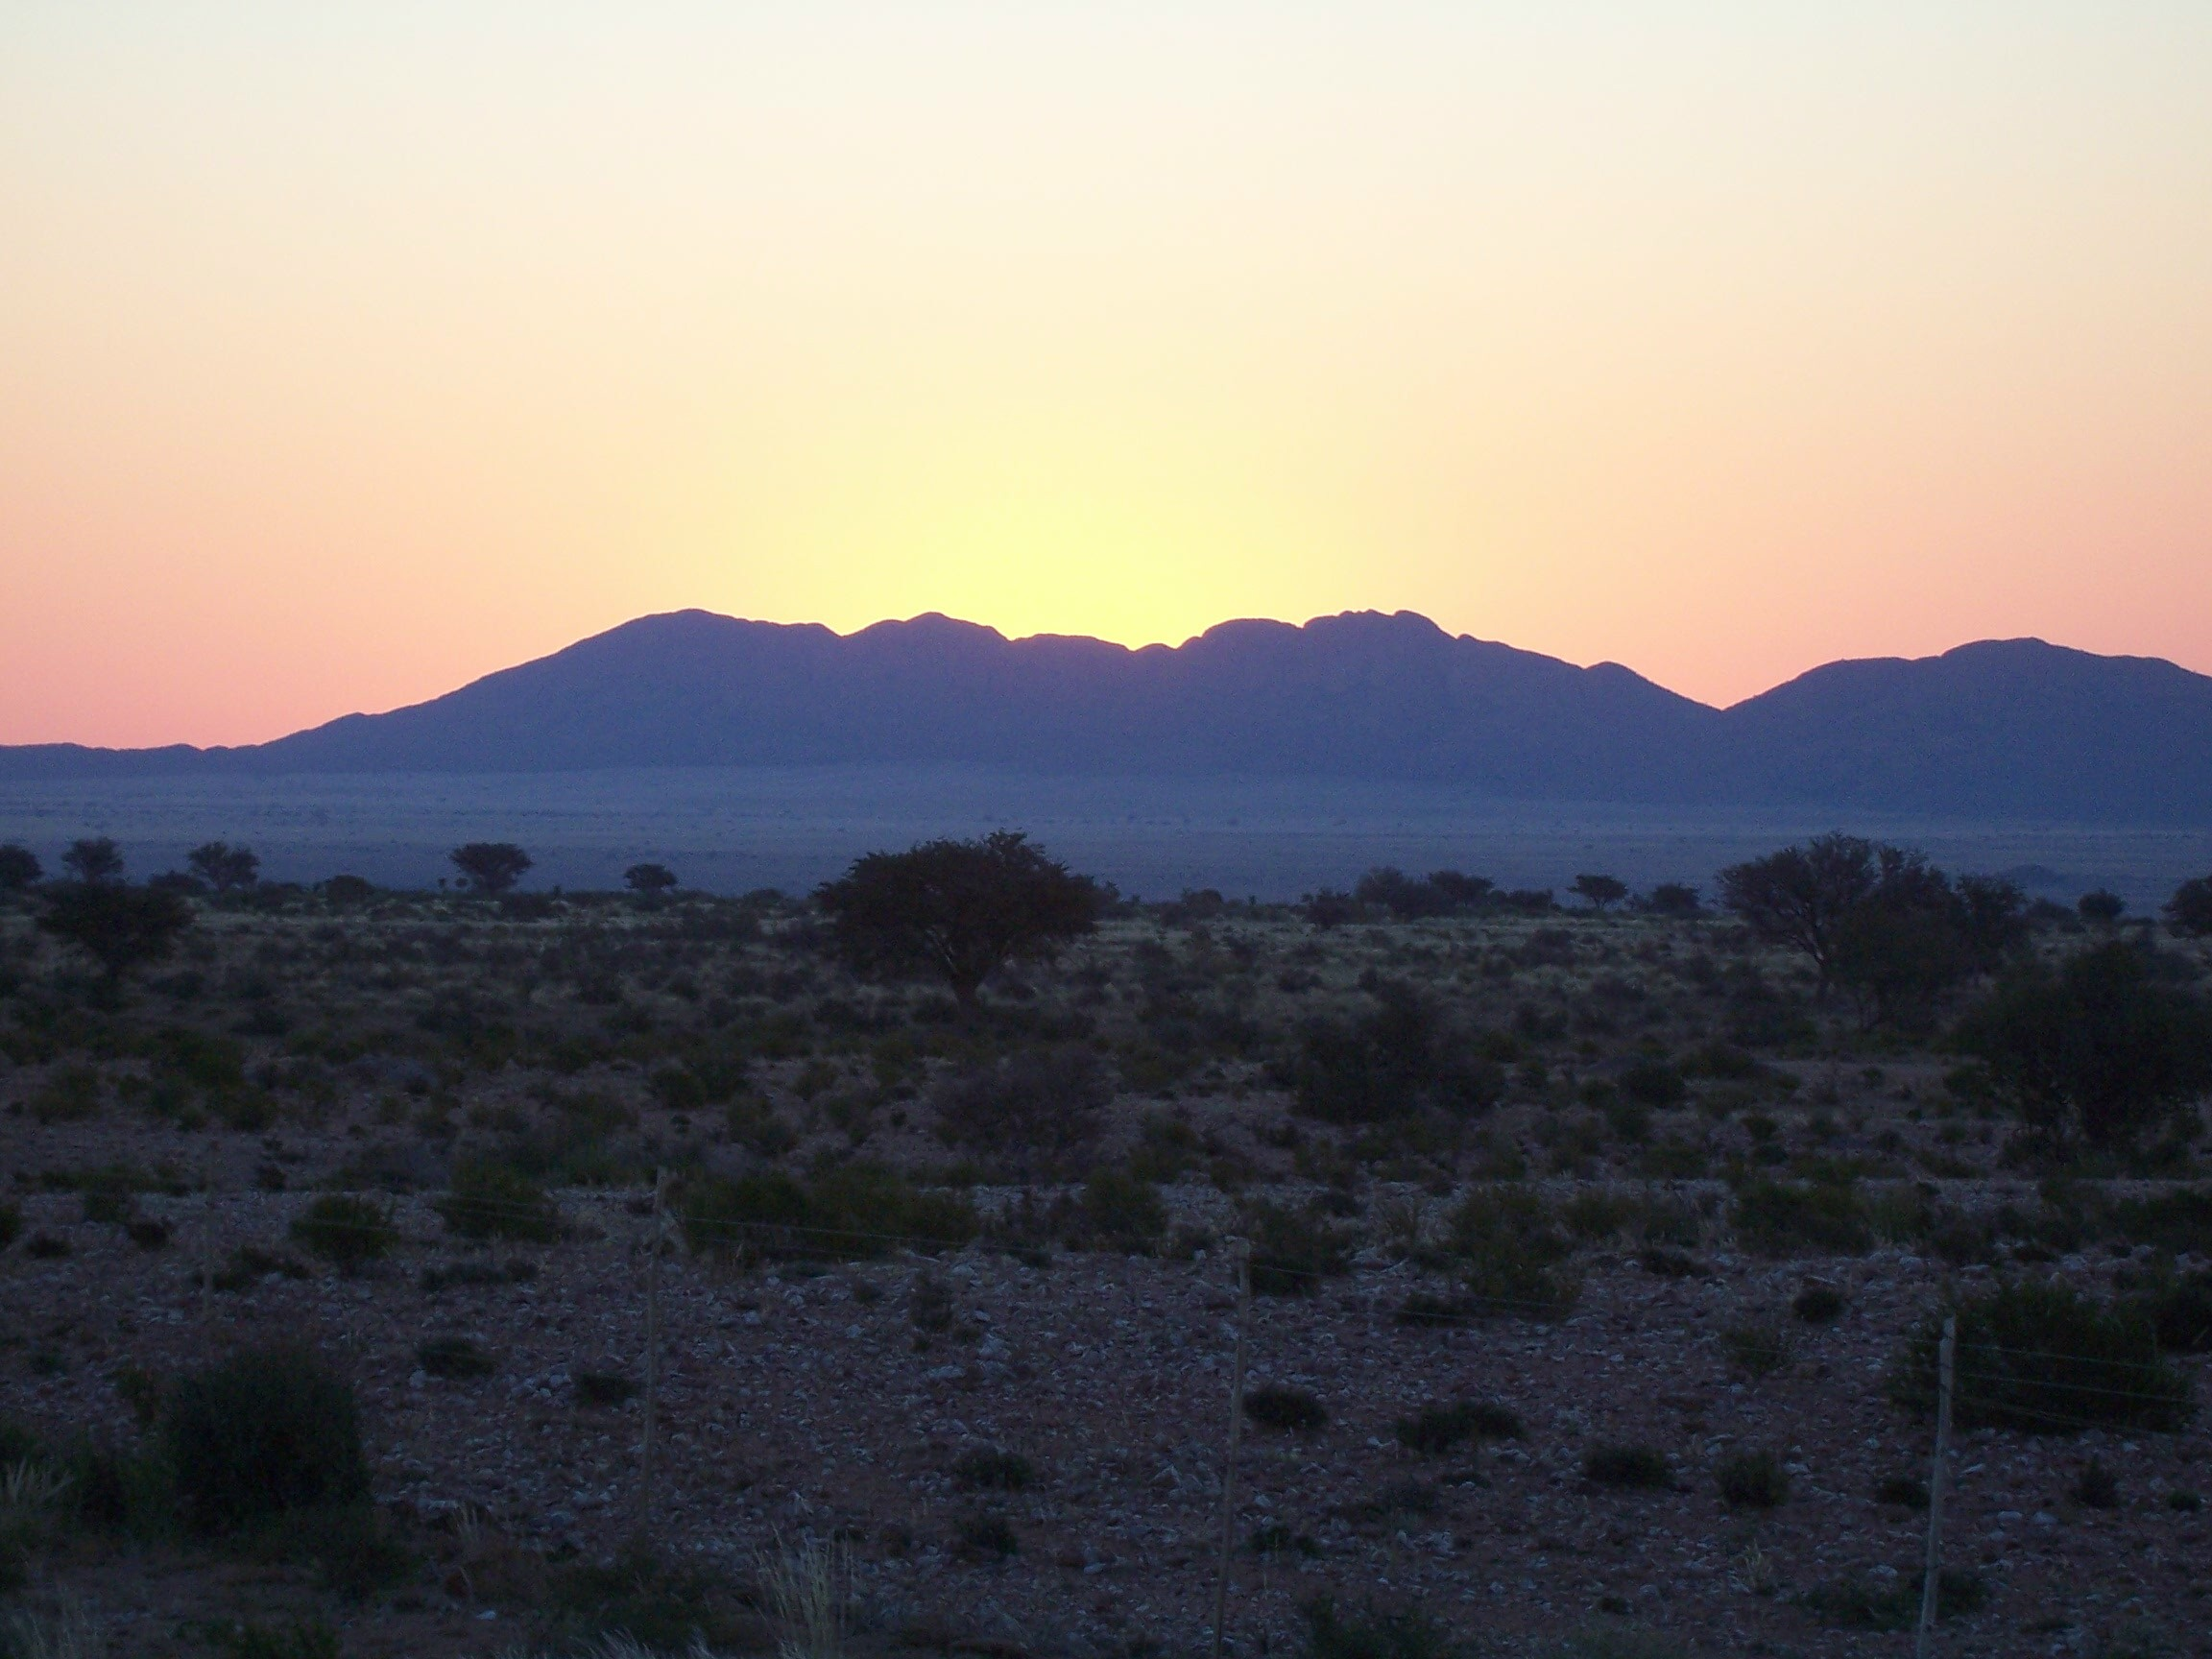 Amazing dawns and sunsets in the desert